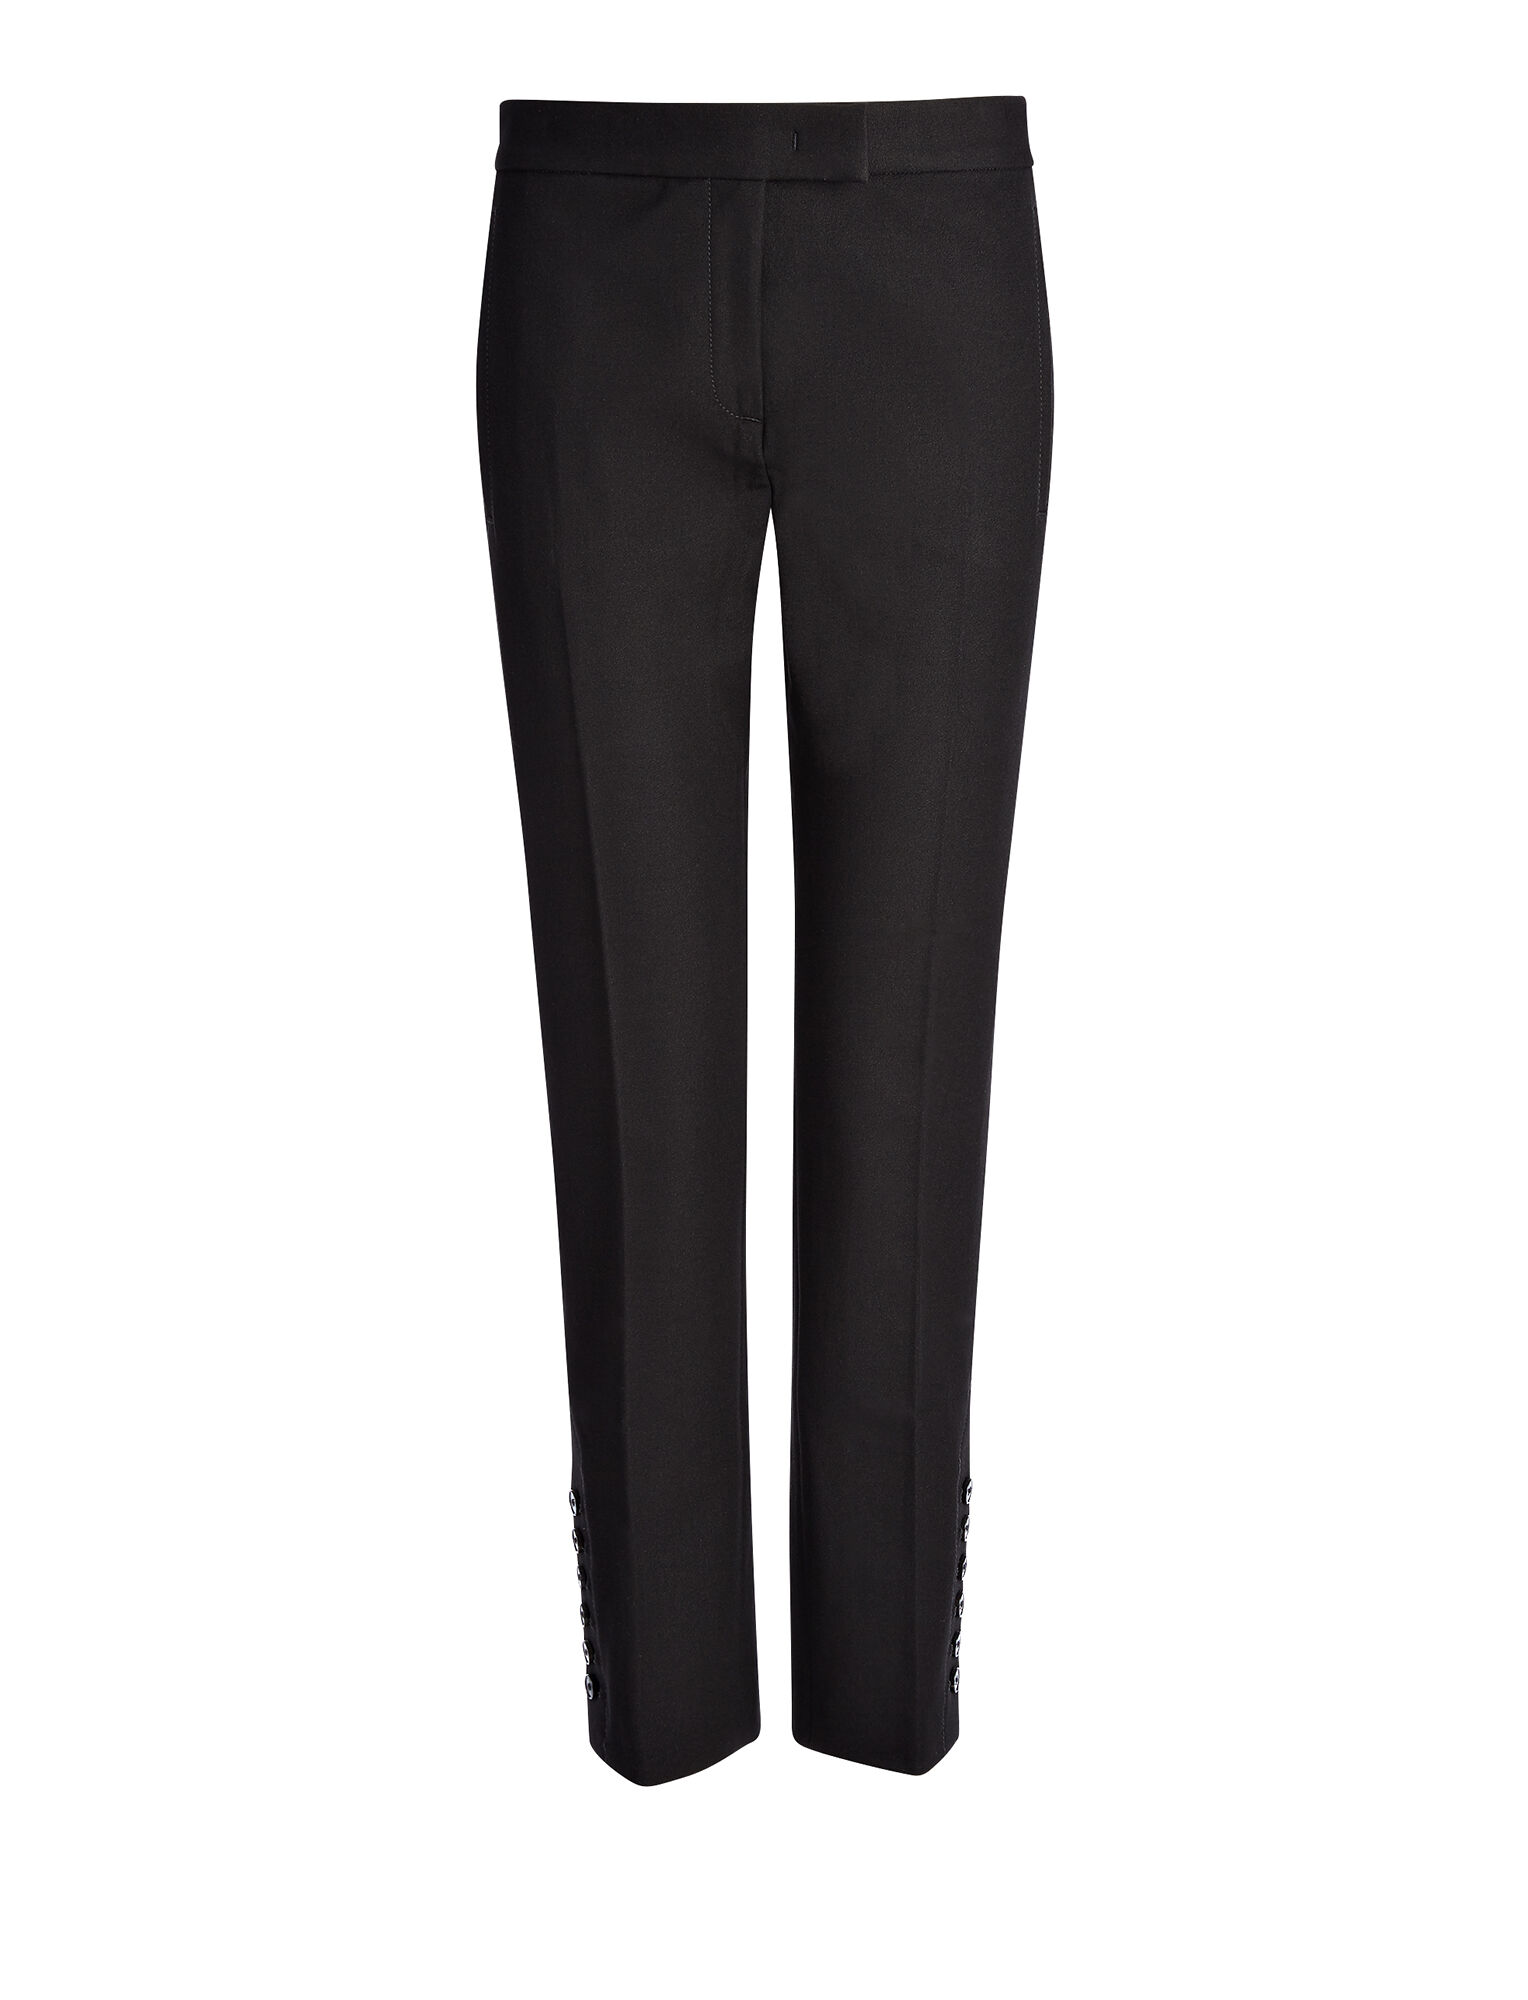 Joseph, Gabardine Stretch Finley Button Trouser, in BLACK